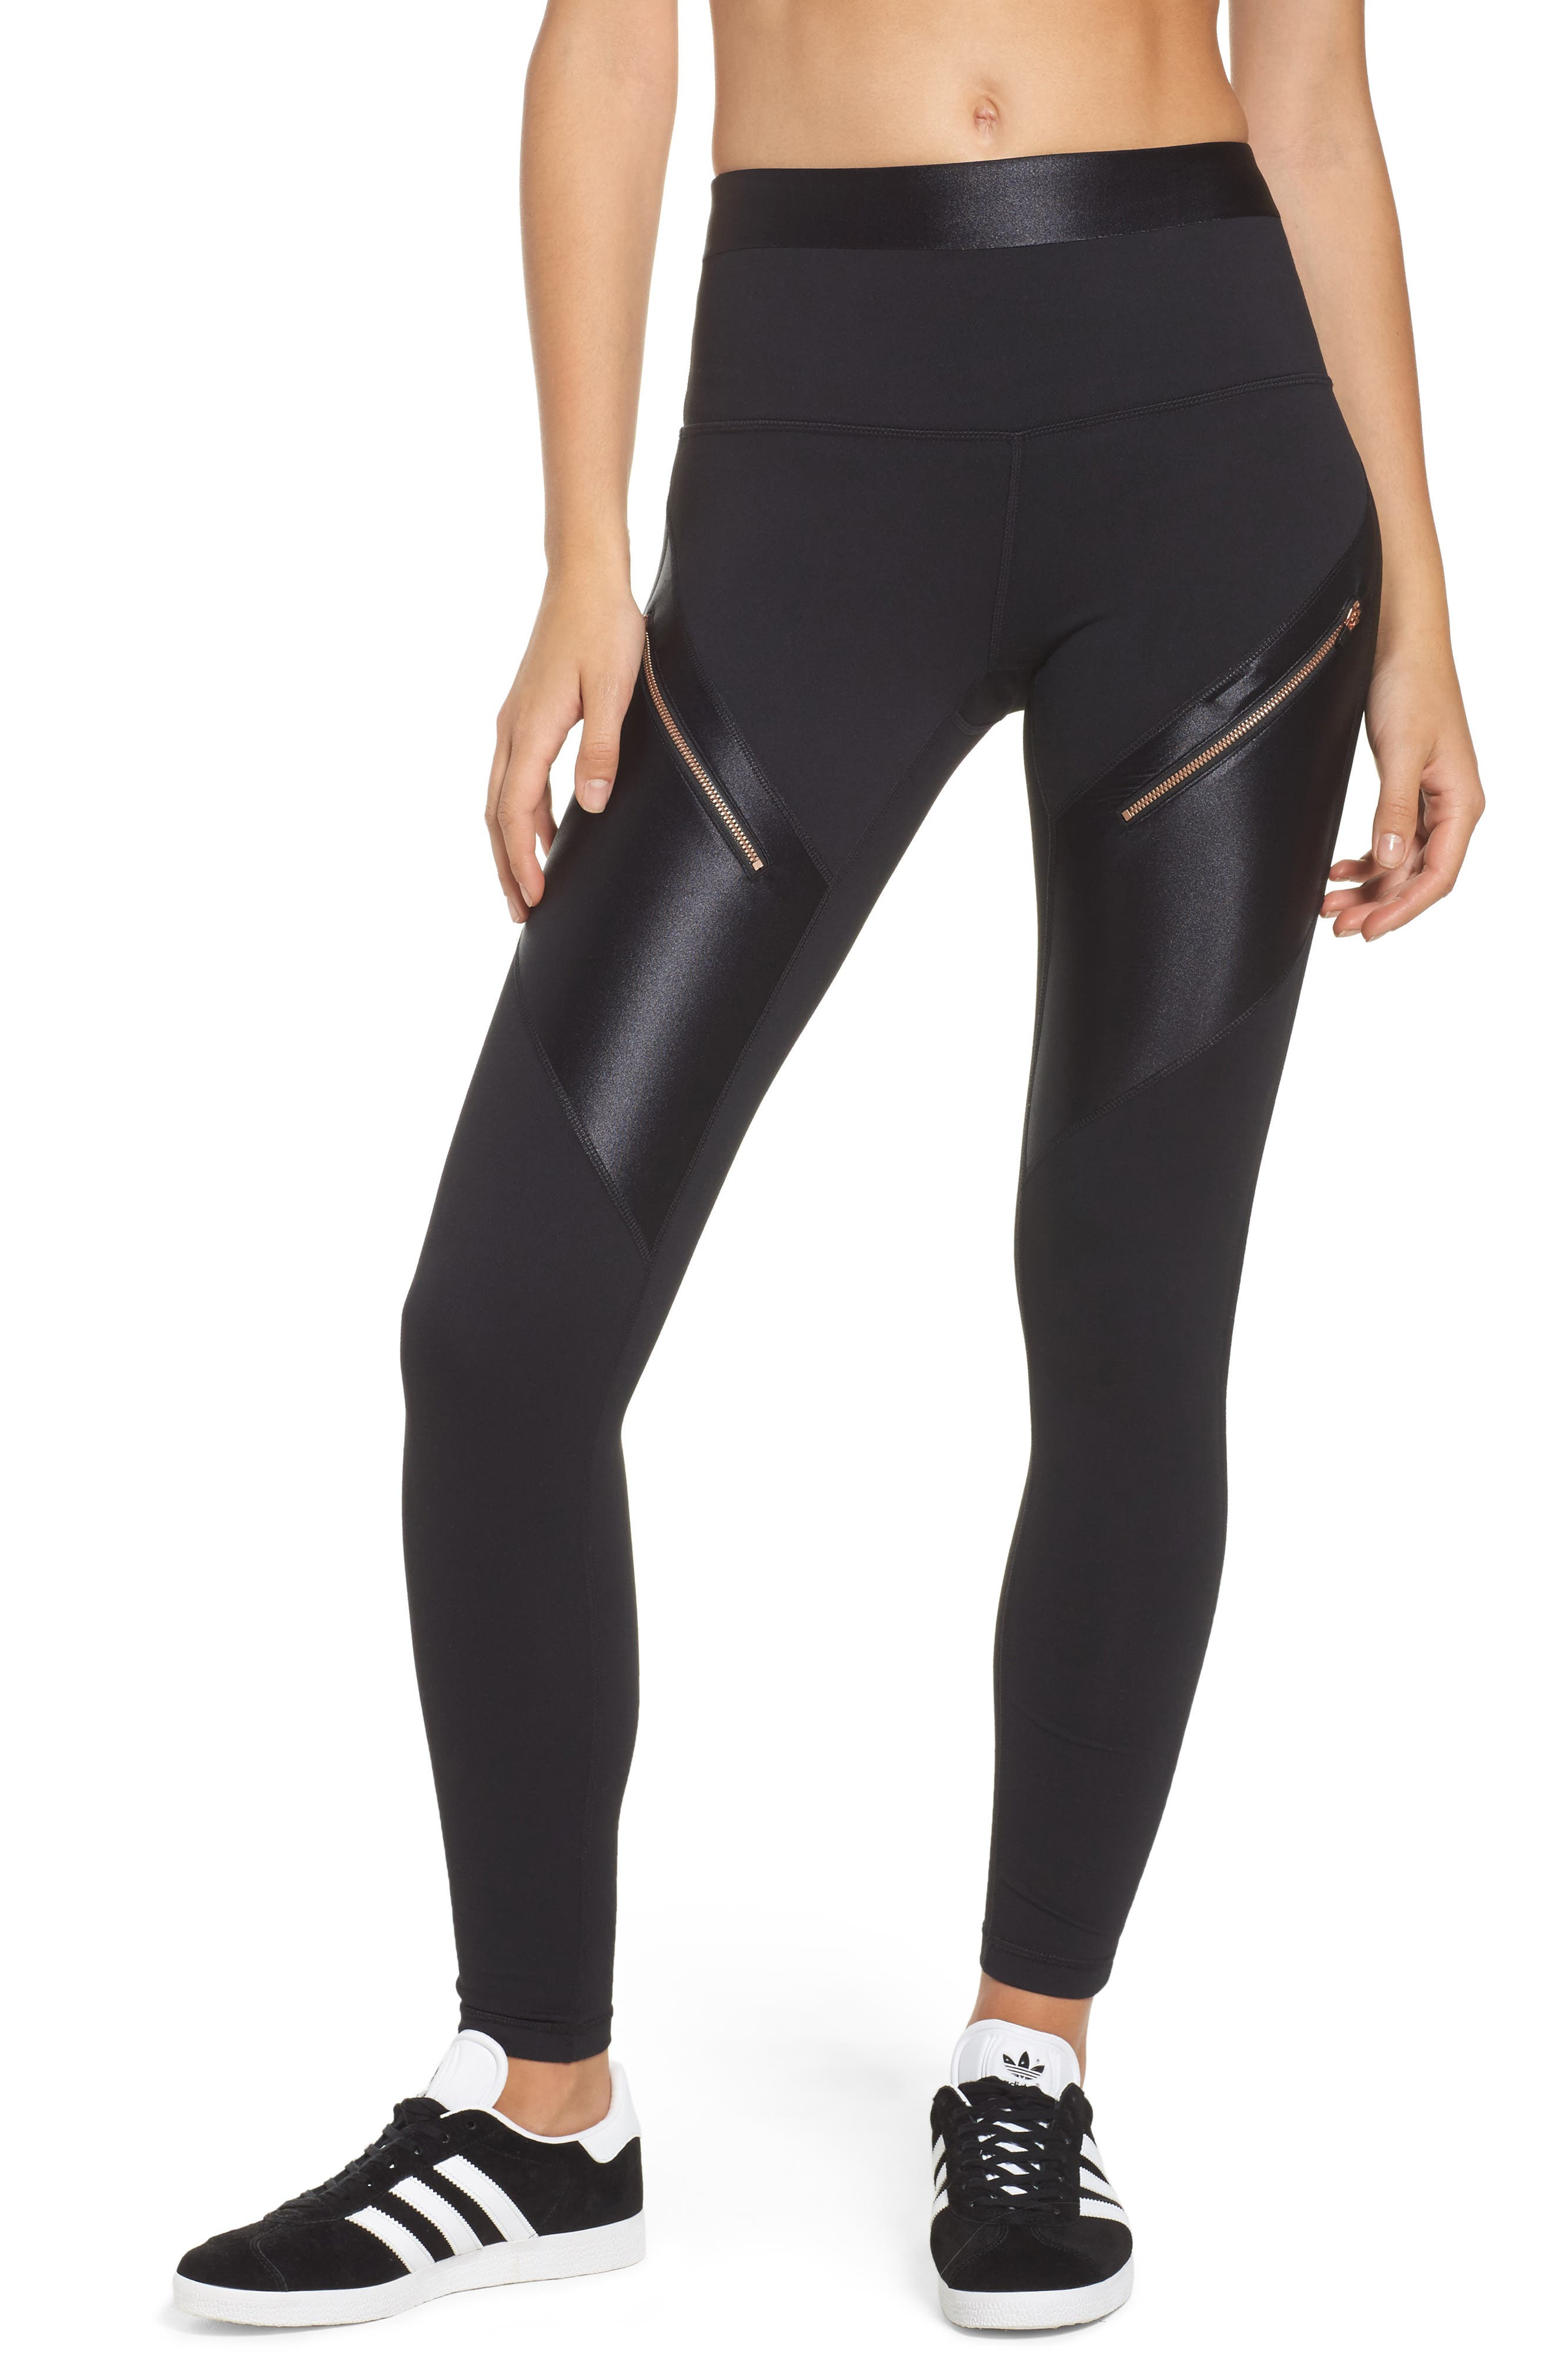 Zella Rosy Days High Waist Ankle Leggings